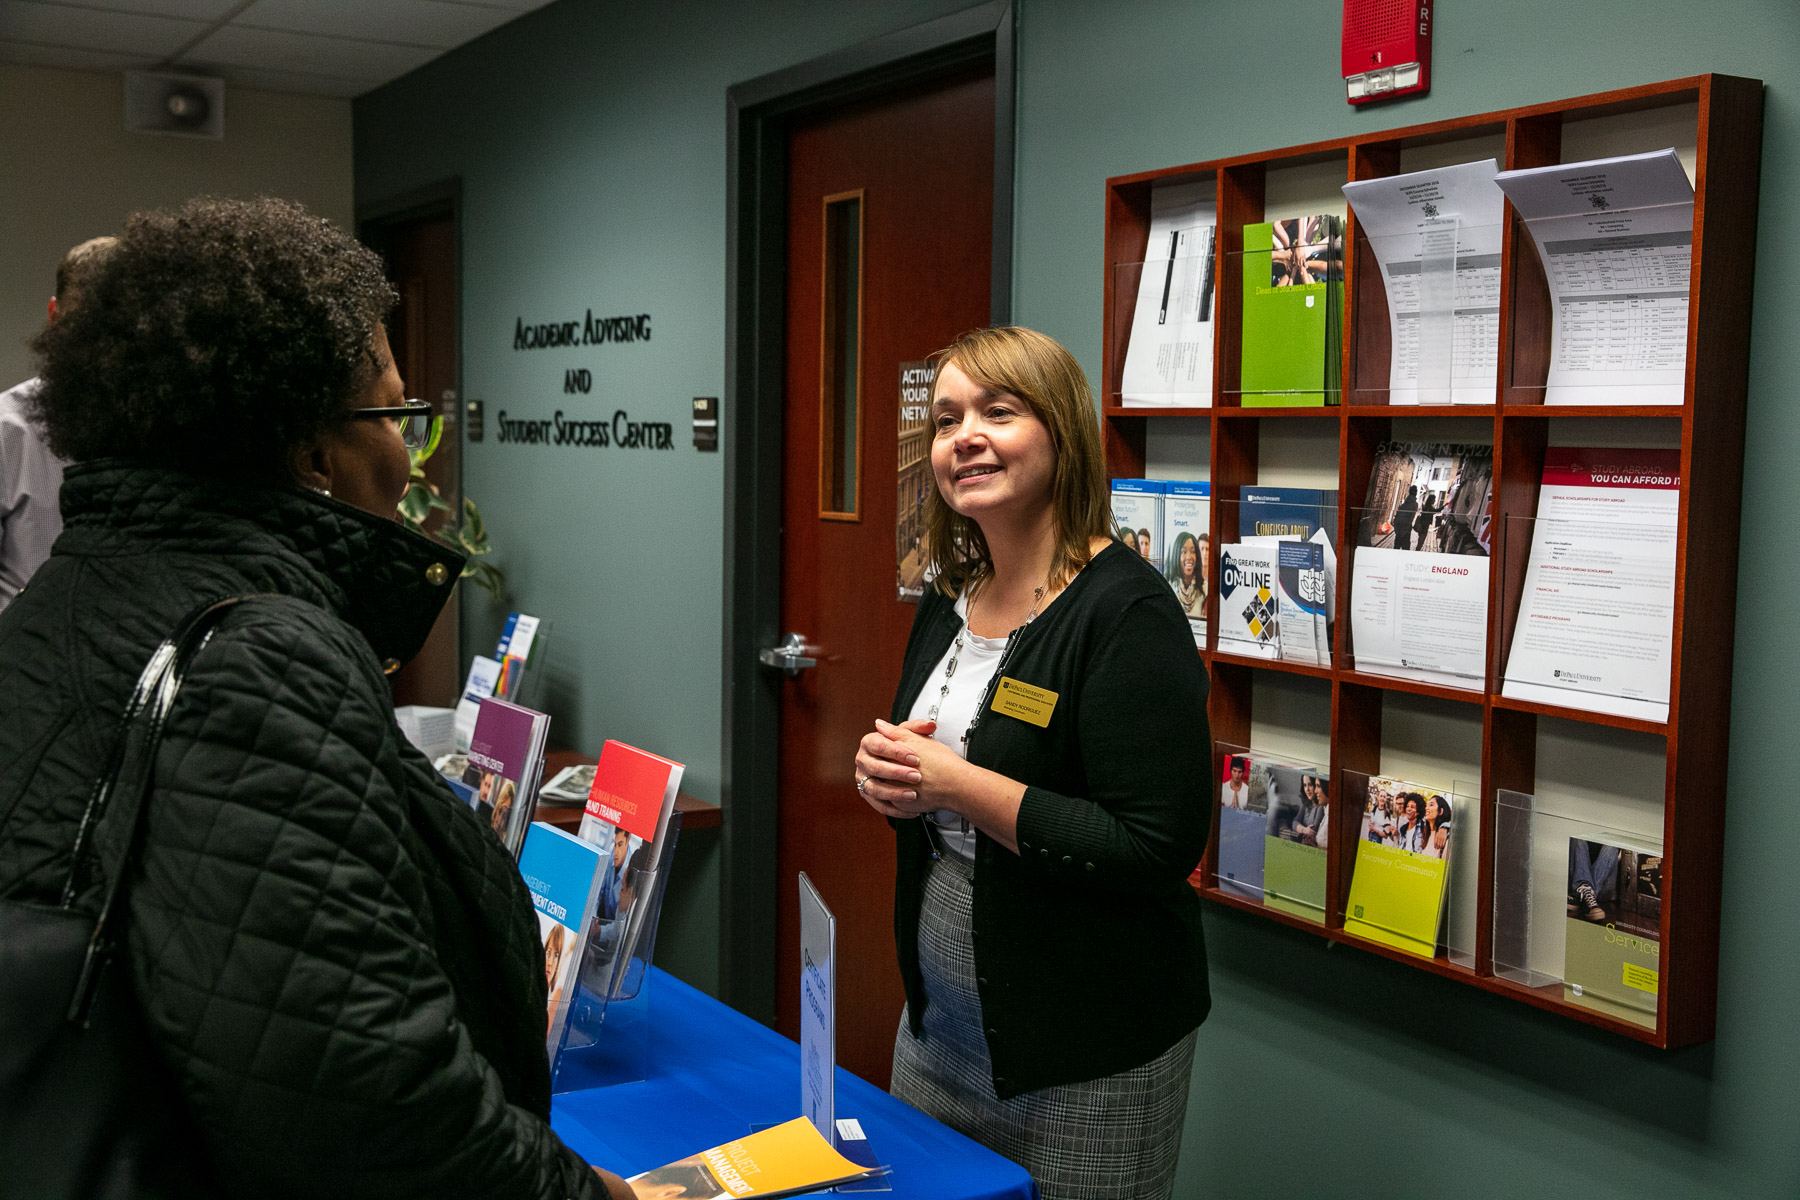 Sandy Rodriguez, marketing communications specialist, shares information about resources available at the School of Continuing and Professional Studies. (DePaul University/Randall Spriggs)